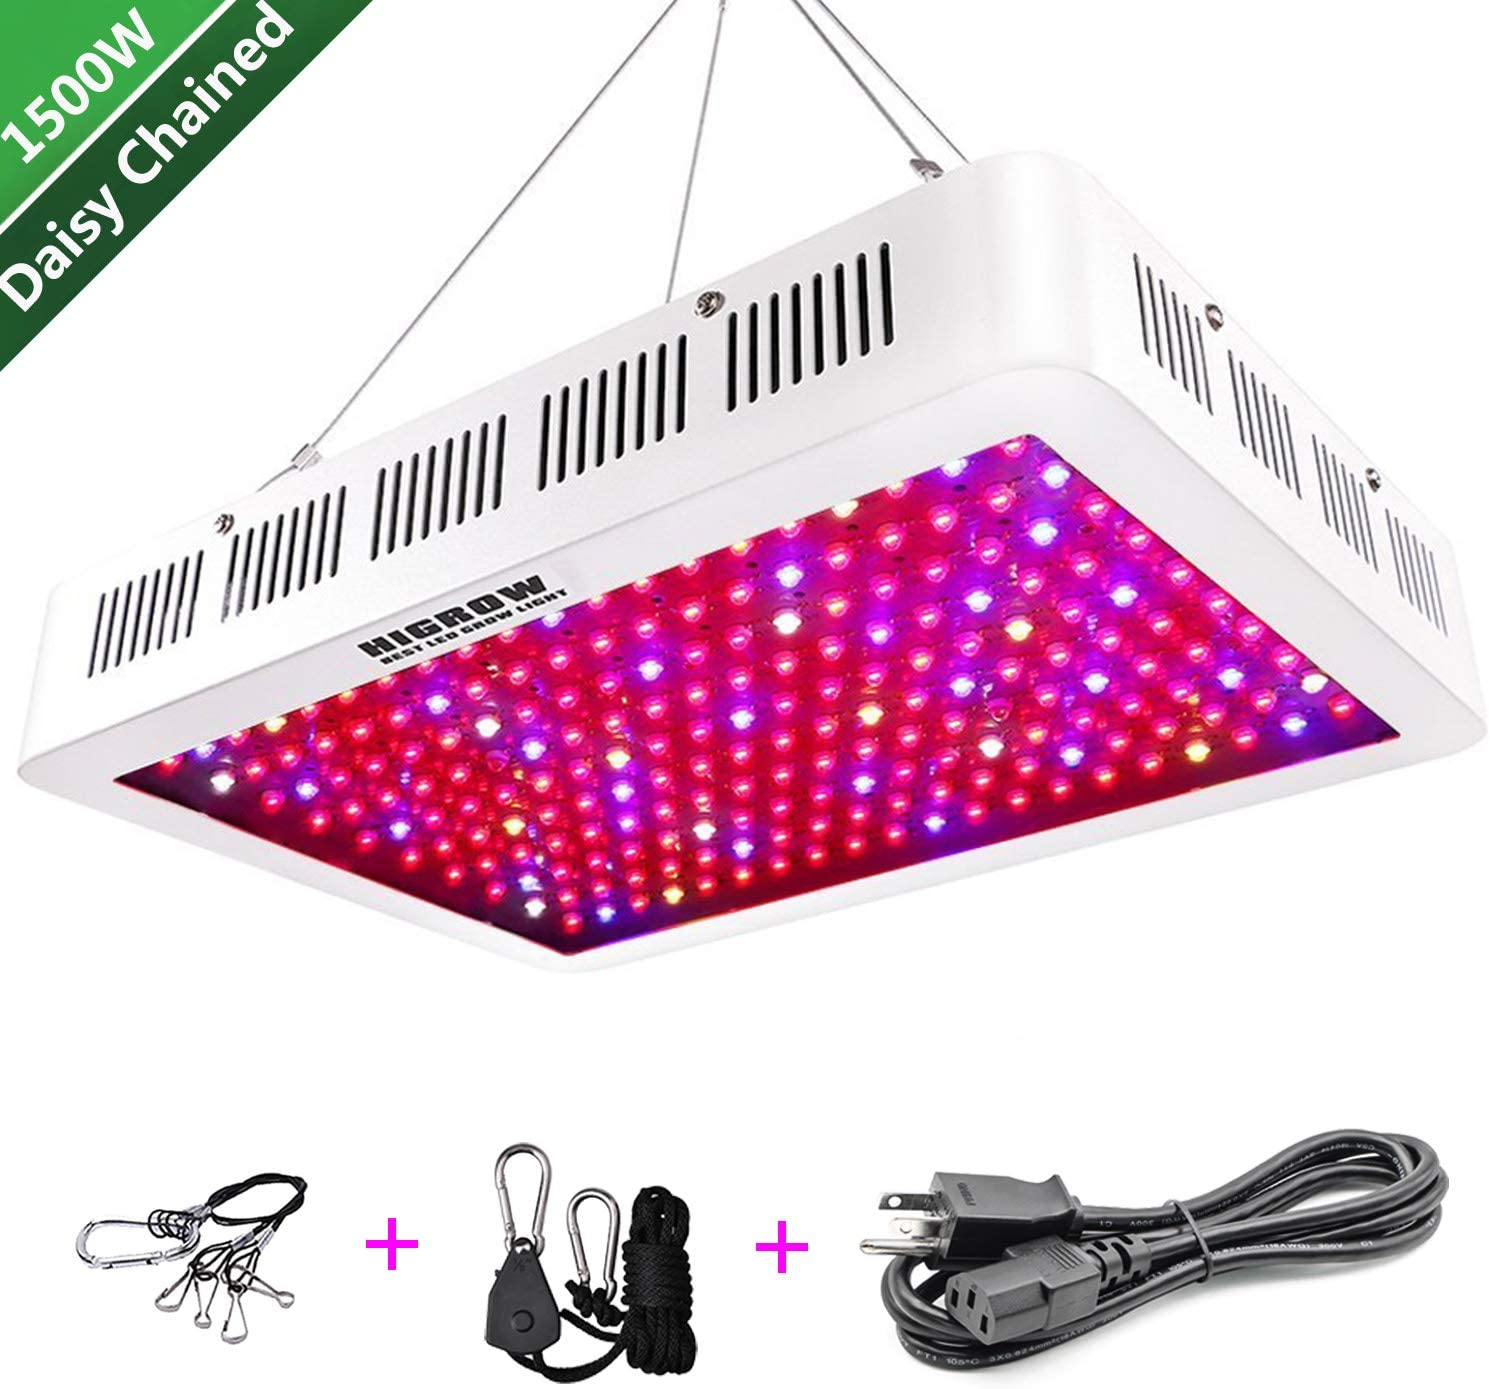 HIGROW 1500W Double Chips LED Grow Light Full Spectrum Grow Lamp with Rope Hanger for Indoor Greenhouse Hydroponic Plants Veg and Flower 10W LED